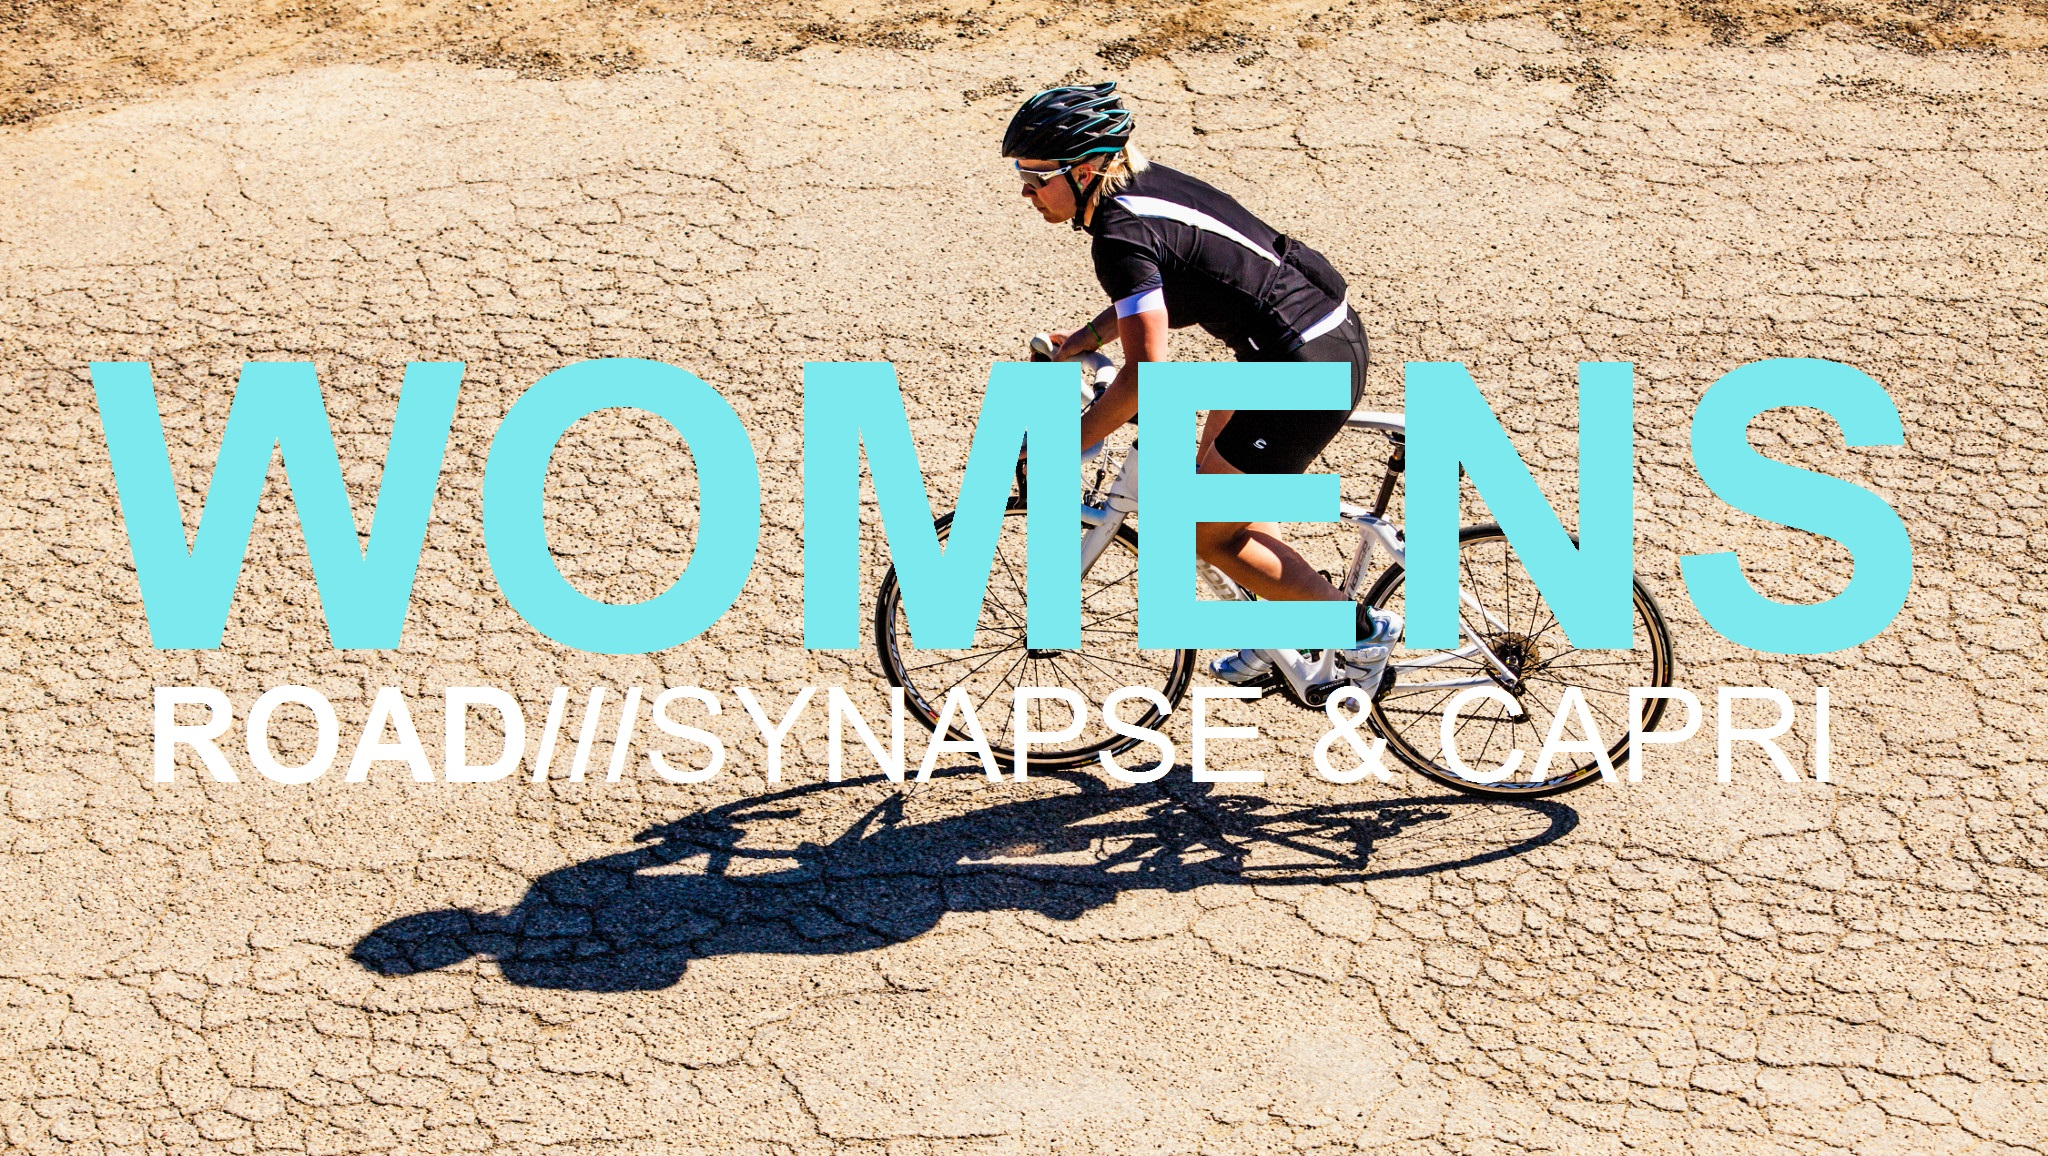 WOMENS ROAD, SYNAPSE AND CAPRI